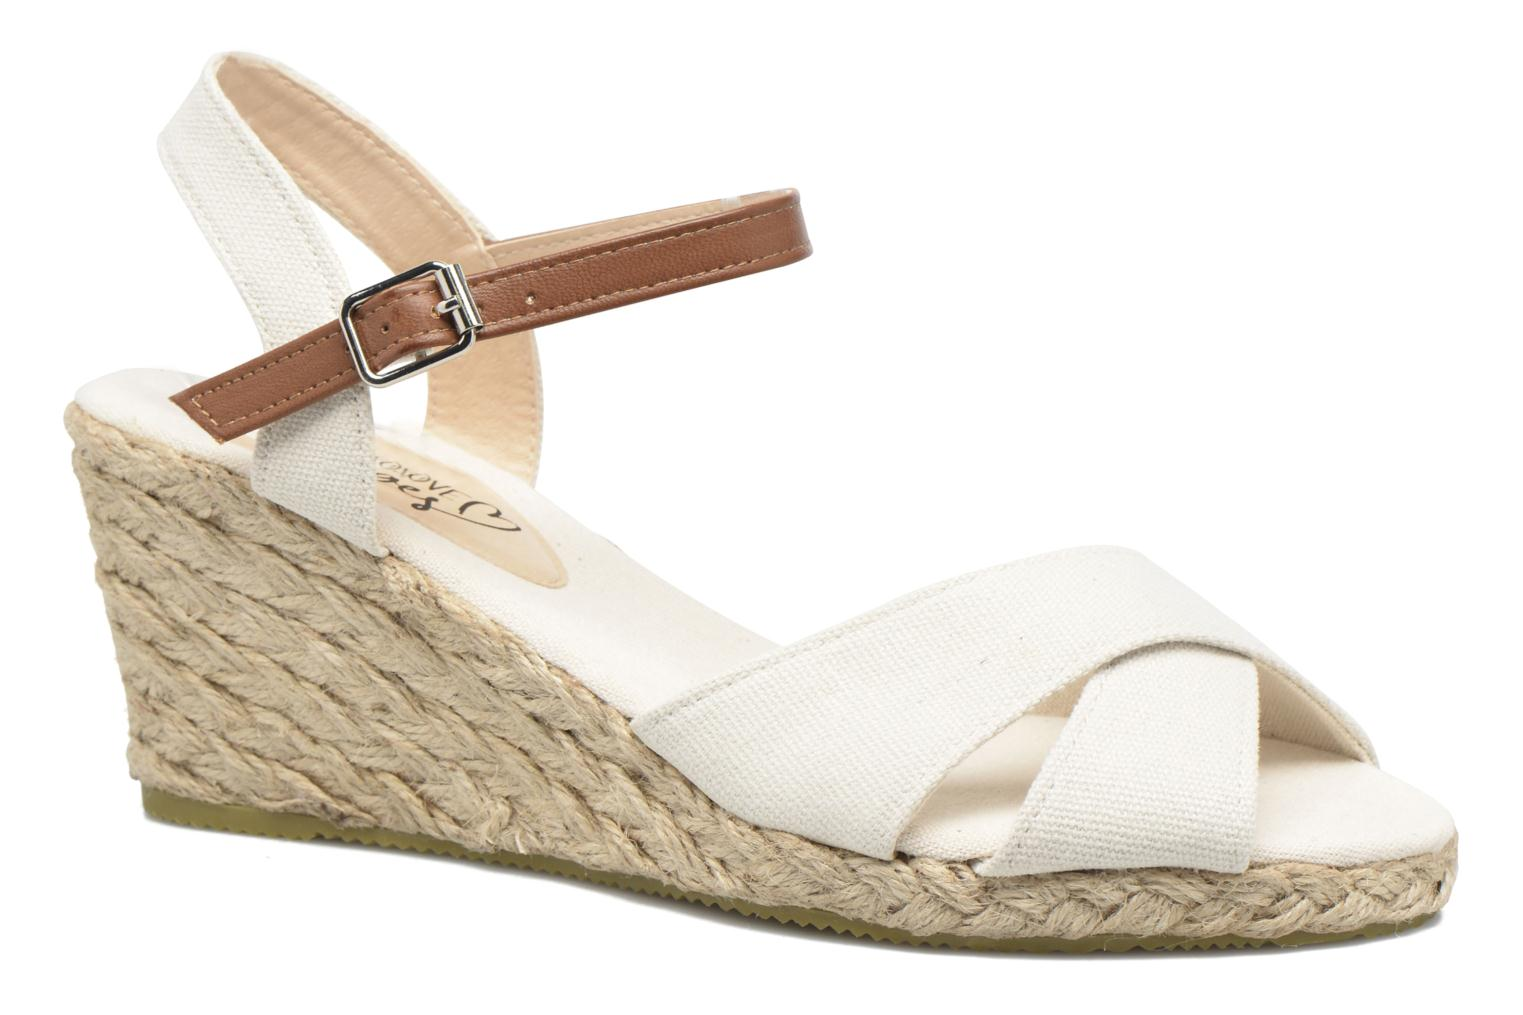 Marques Chaussure femme I Love Shoes femme MCEMIMI Beige